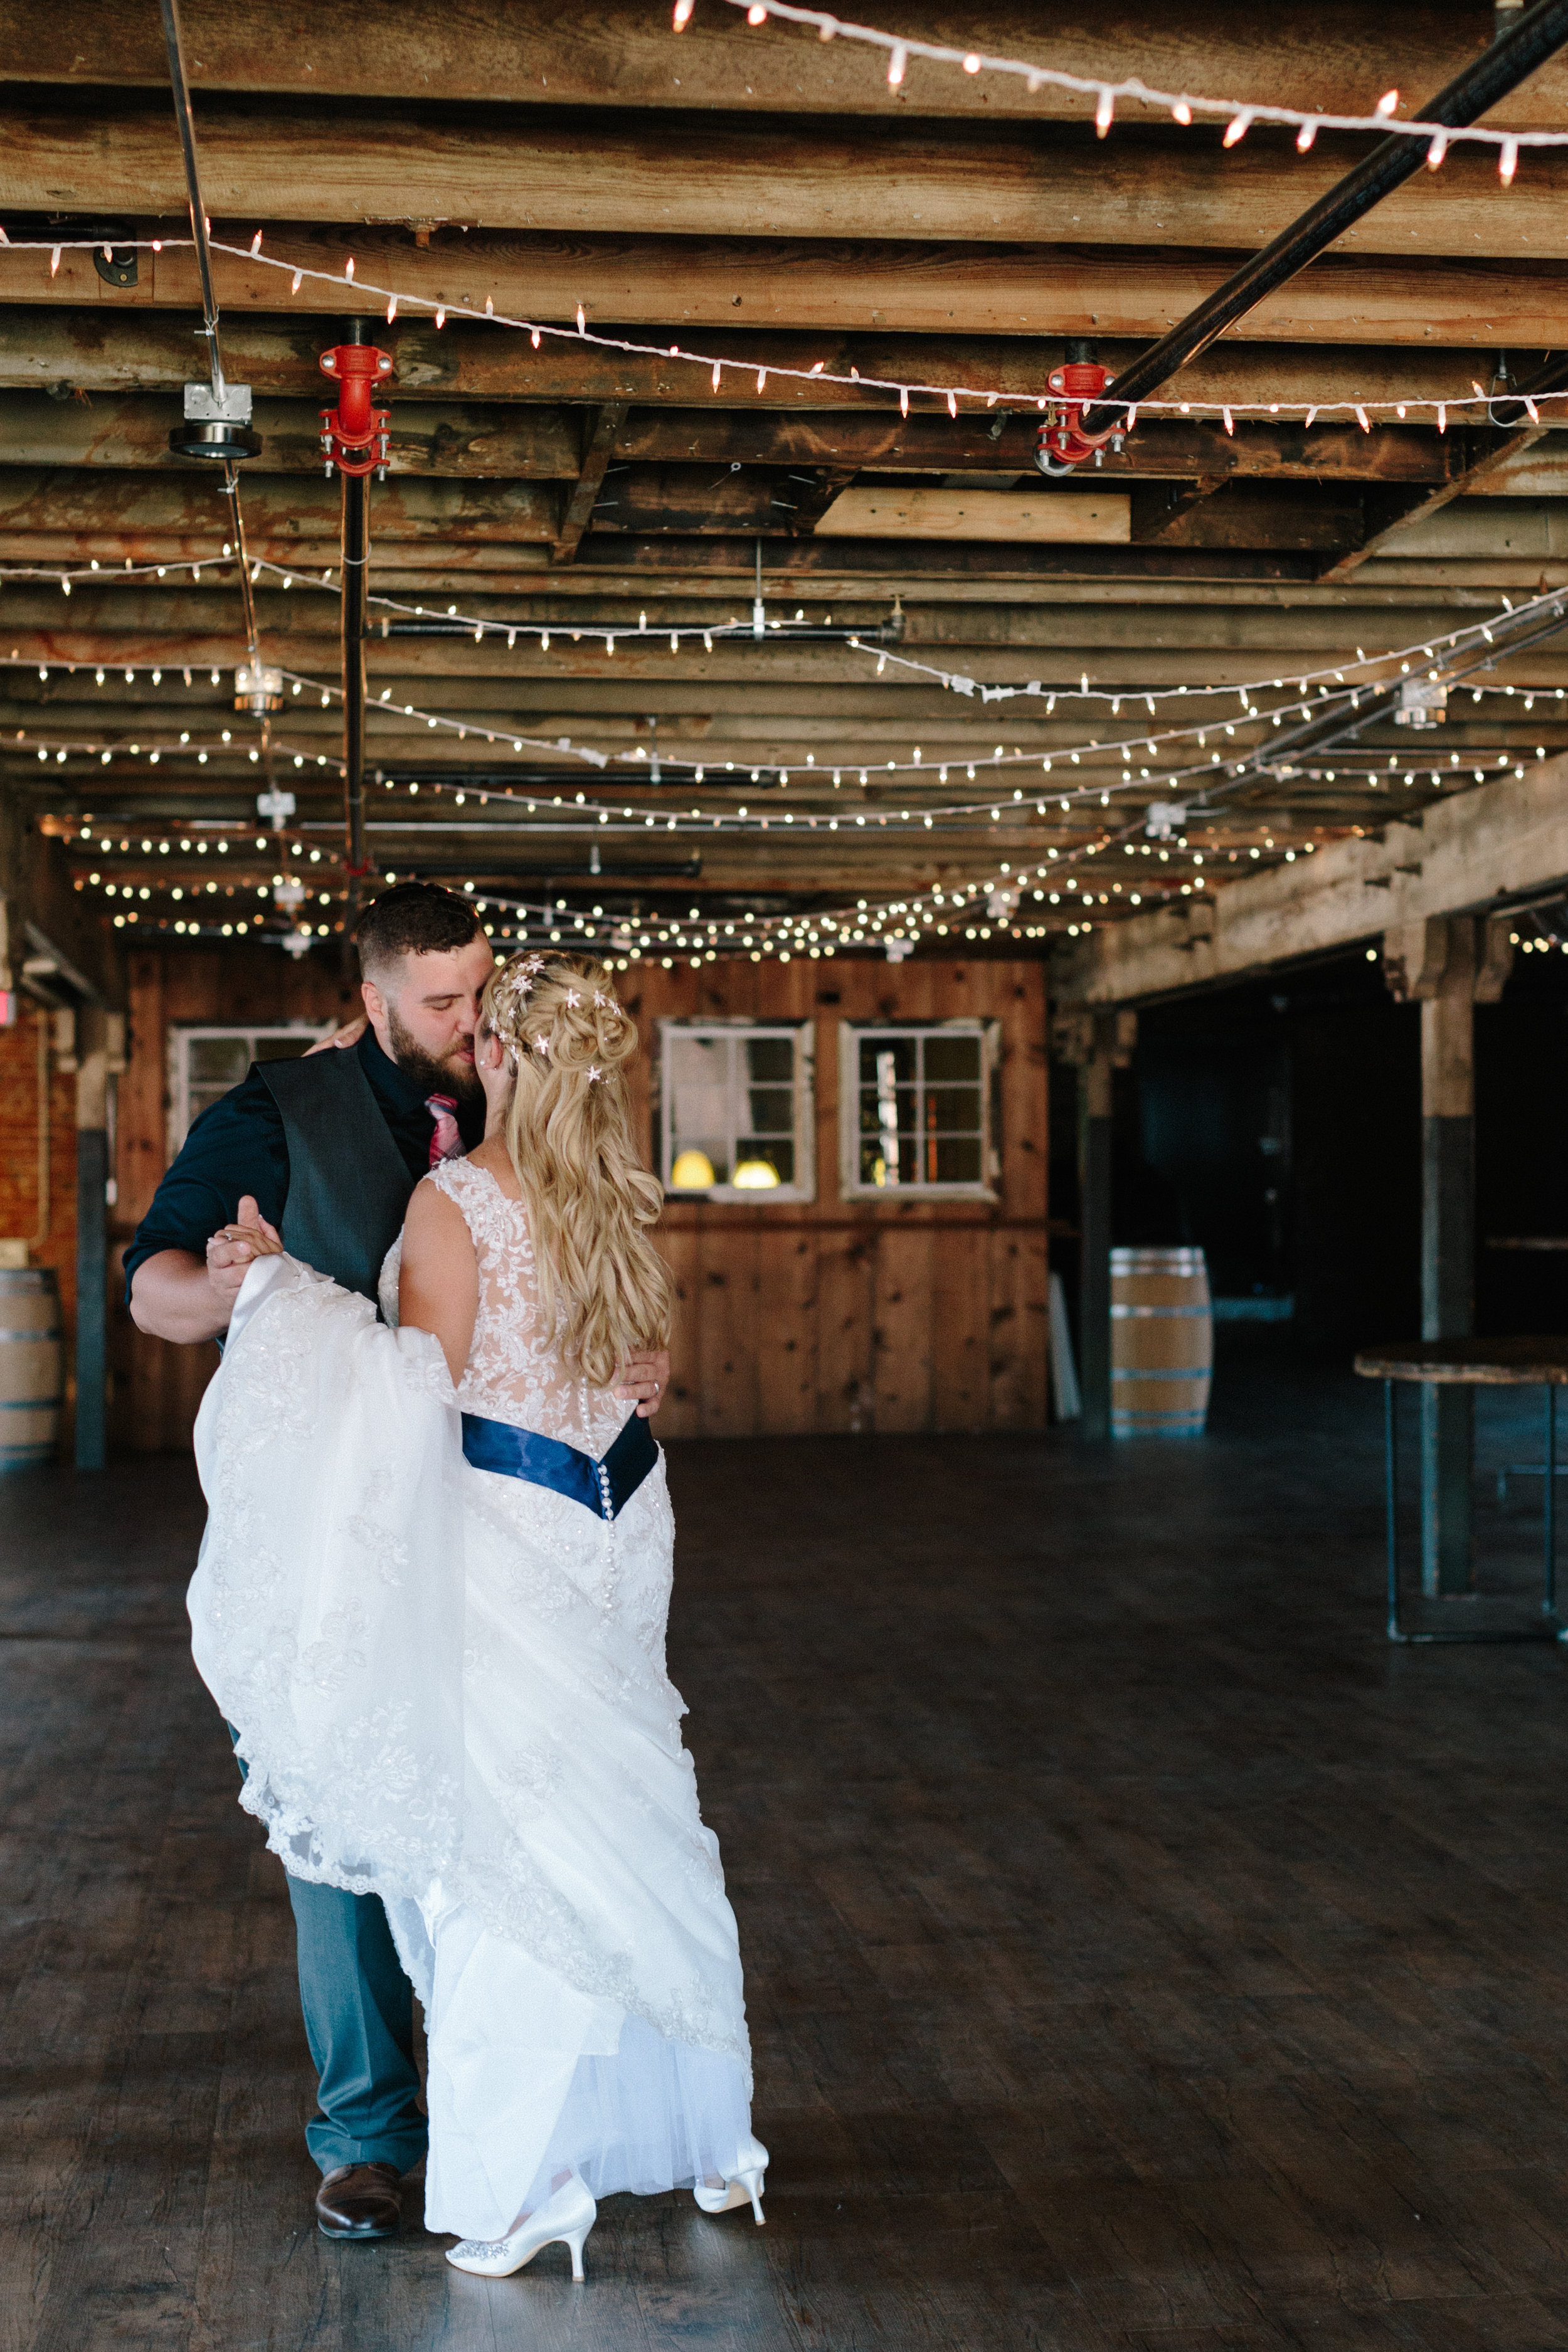 alyssa barletter photography lifted spirits distillery hayloft kansas city library wedding reception-8.jpg